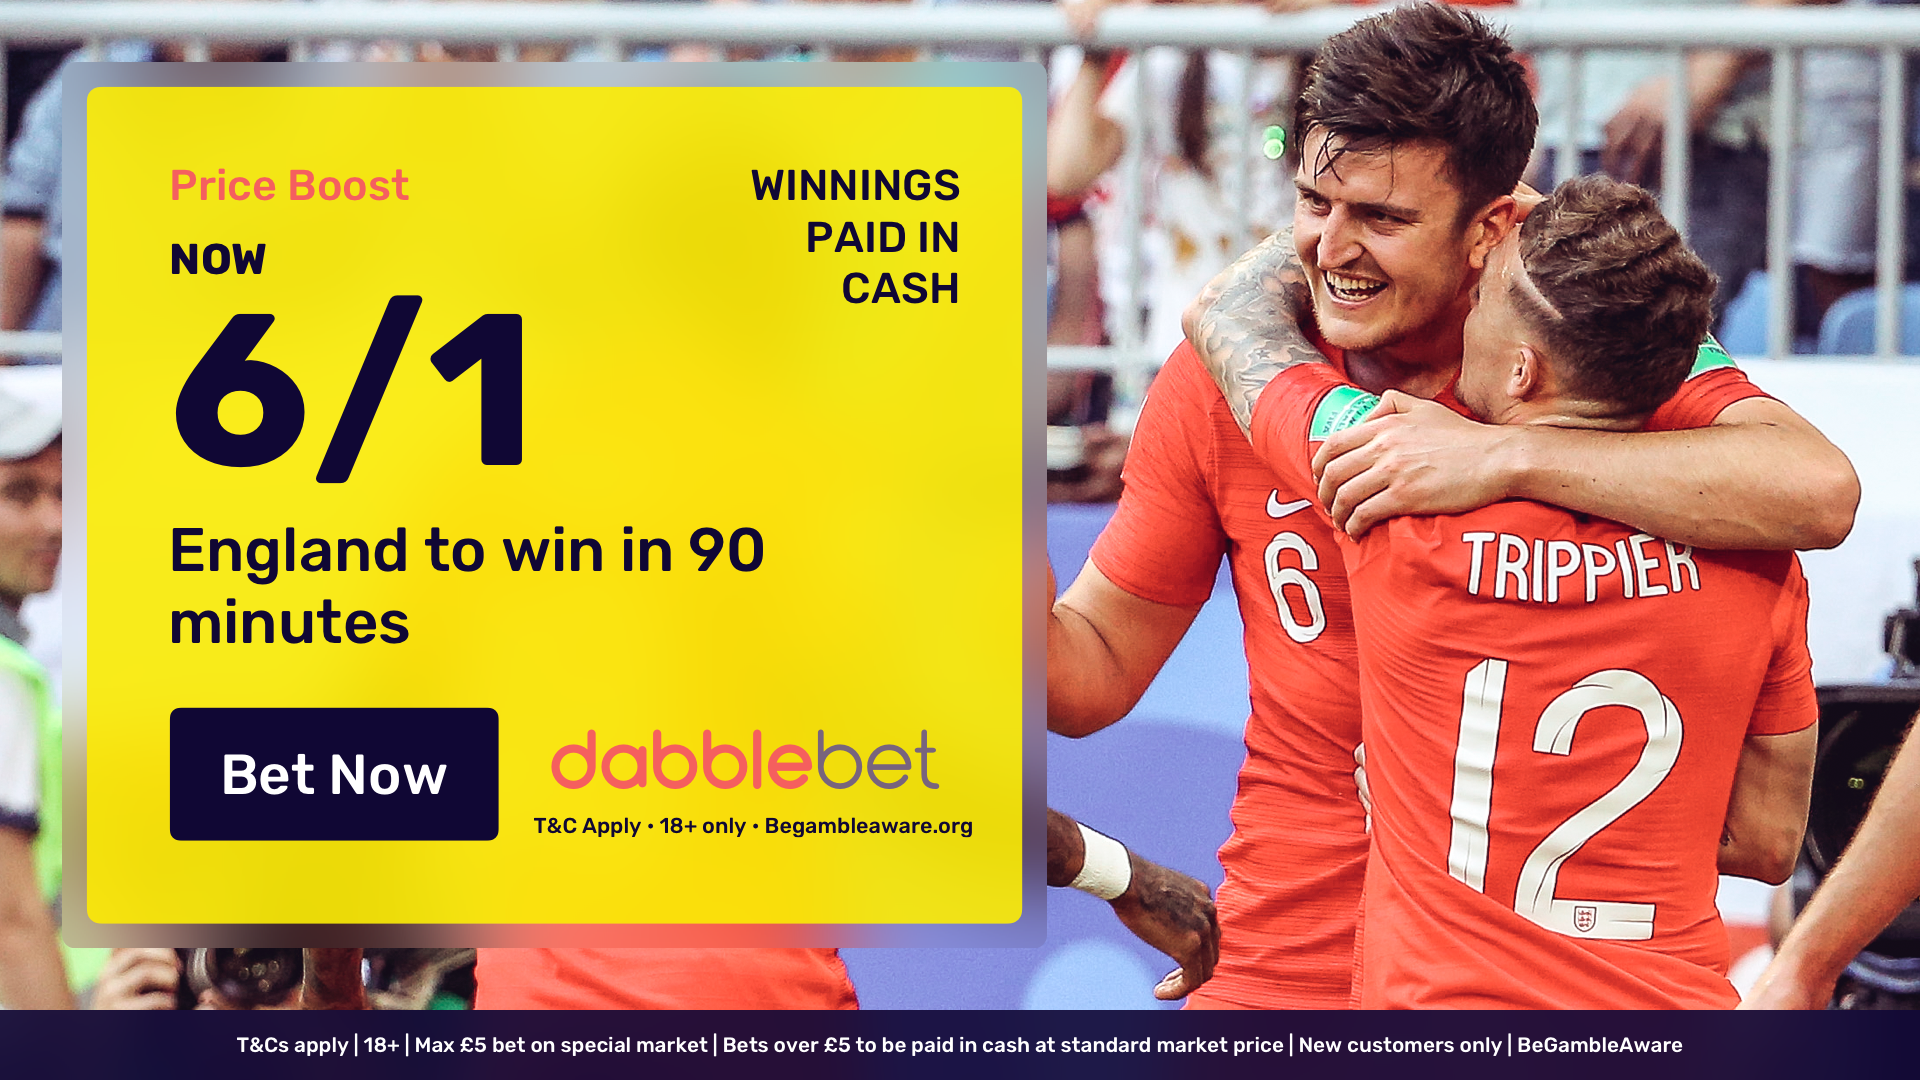 England Croatia dabblebet offer in article